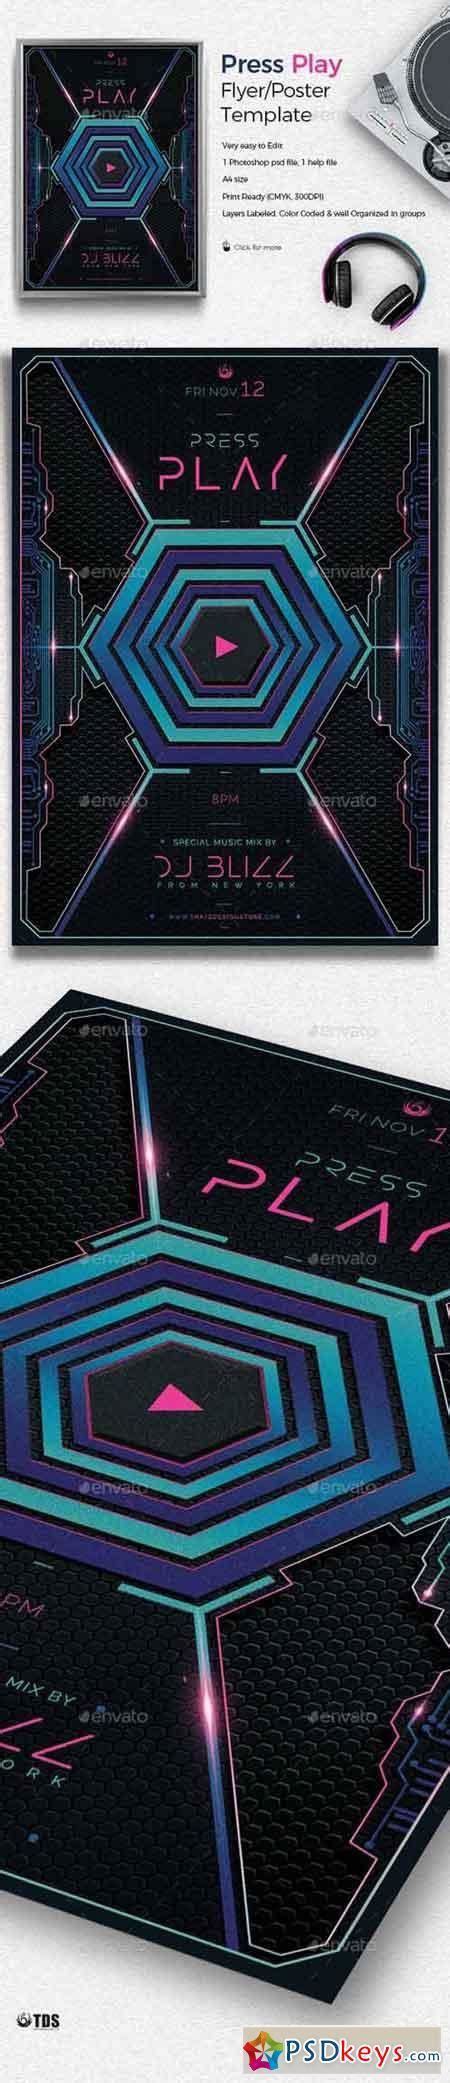 Press Play Flyer Template 19488077 187 Free Download Photoshop Vector Stock Image Via Torrent Play Flyer Template